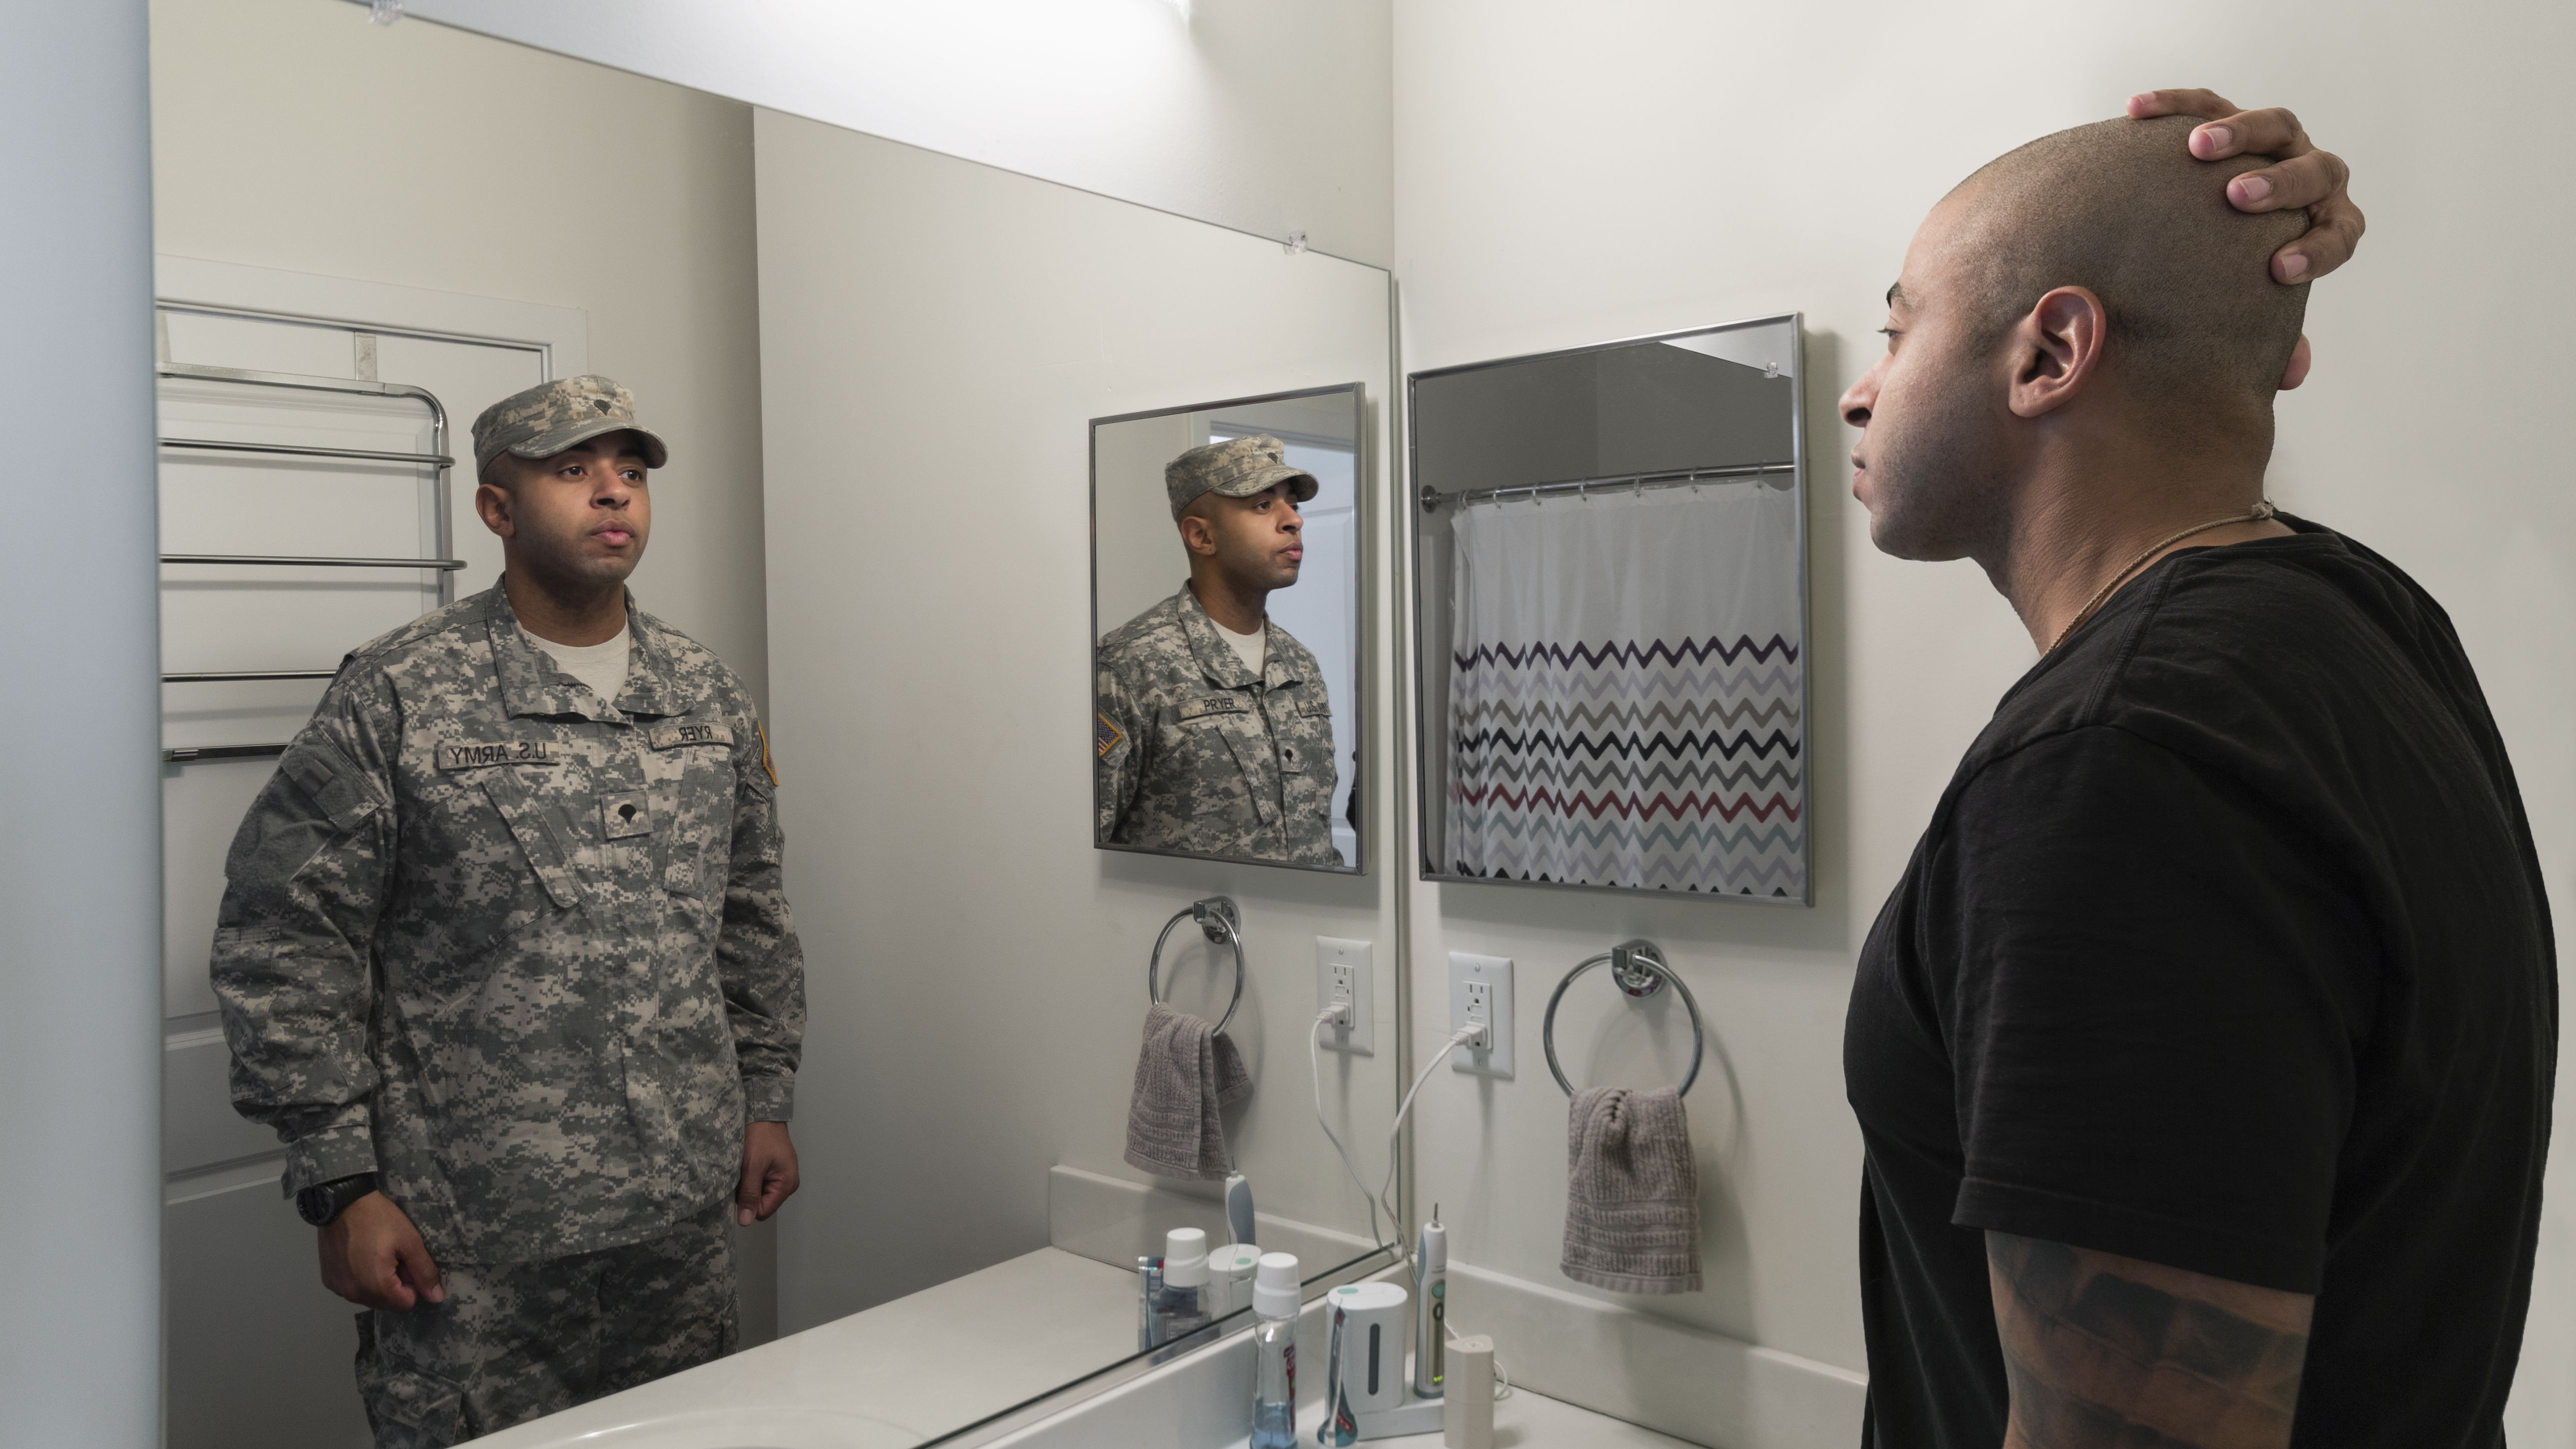 Ways to Get Discharged From the Military